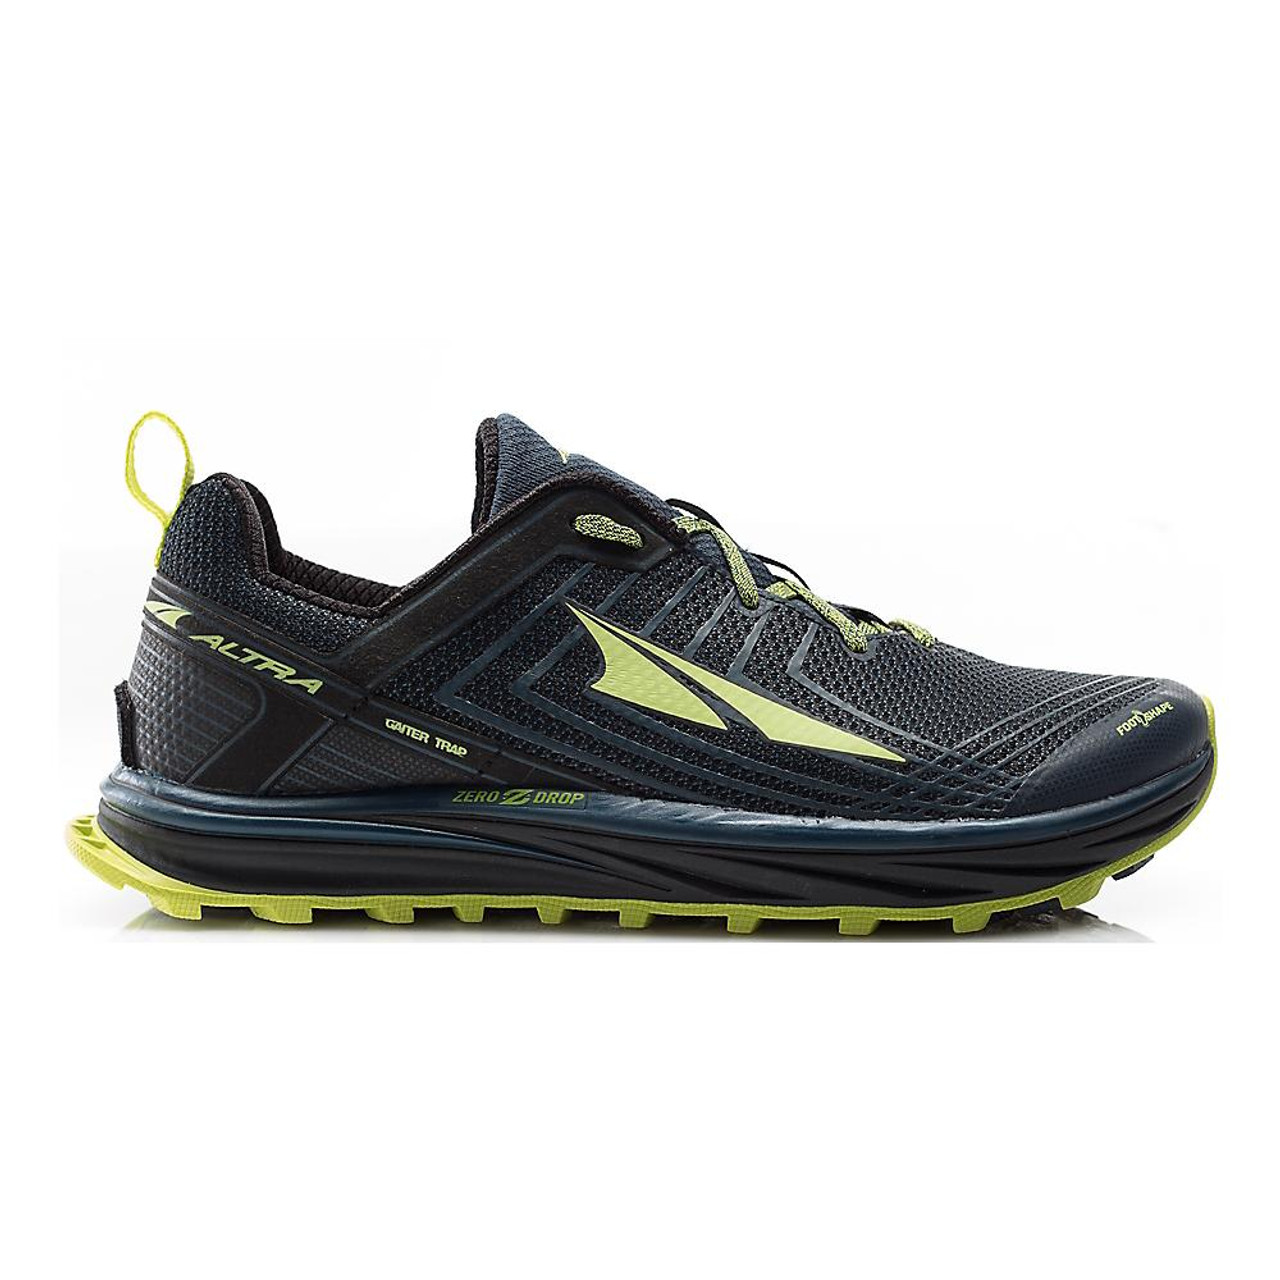 412903c384028 Men's Altra Timp 1.5 Trail Running Shoes | Free 3-Day Shipping